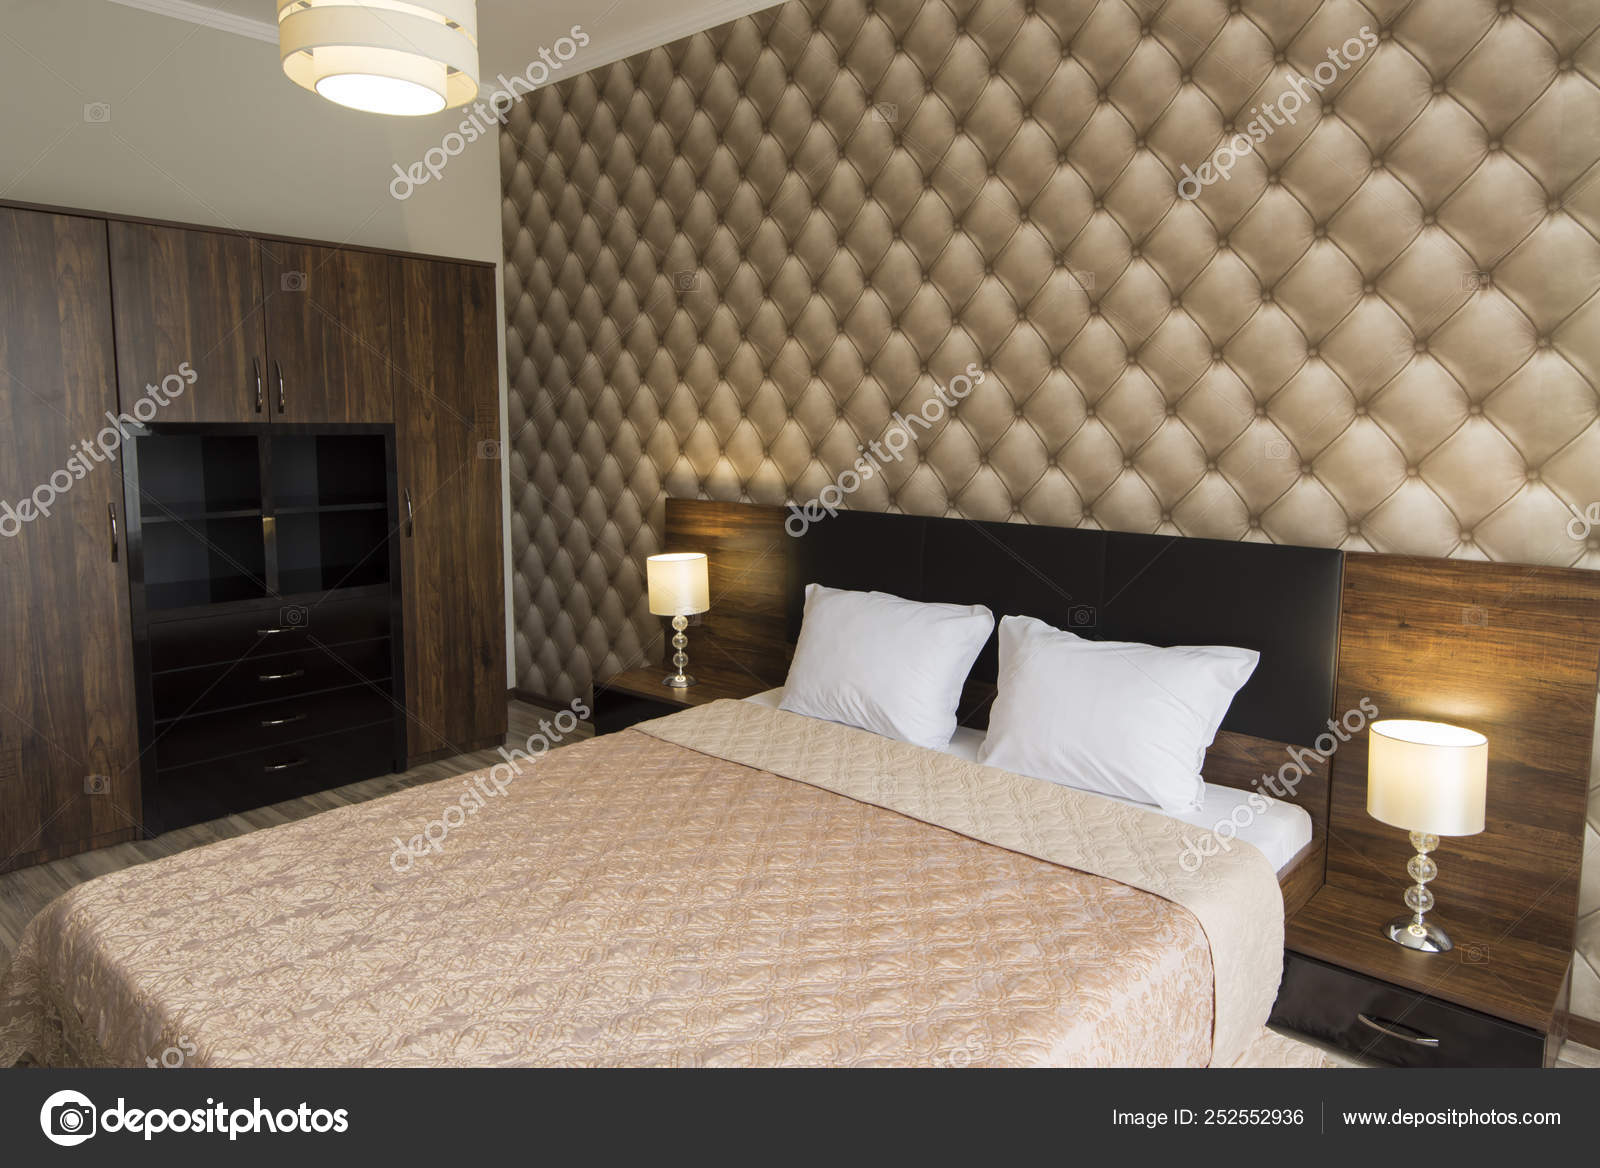 Classy Bedroom Interior Design Large Bed Room With Brown Color Tone Stock Photo C Snj Abv Bg 252552936